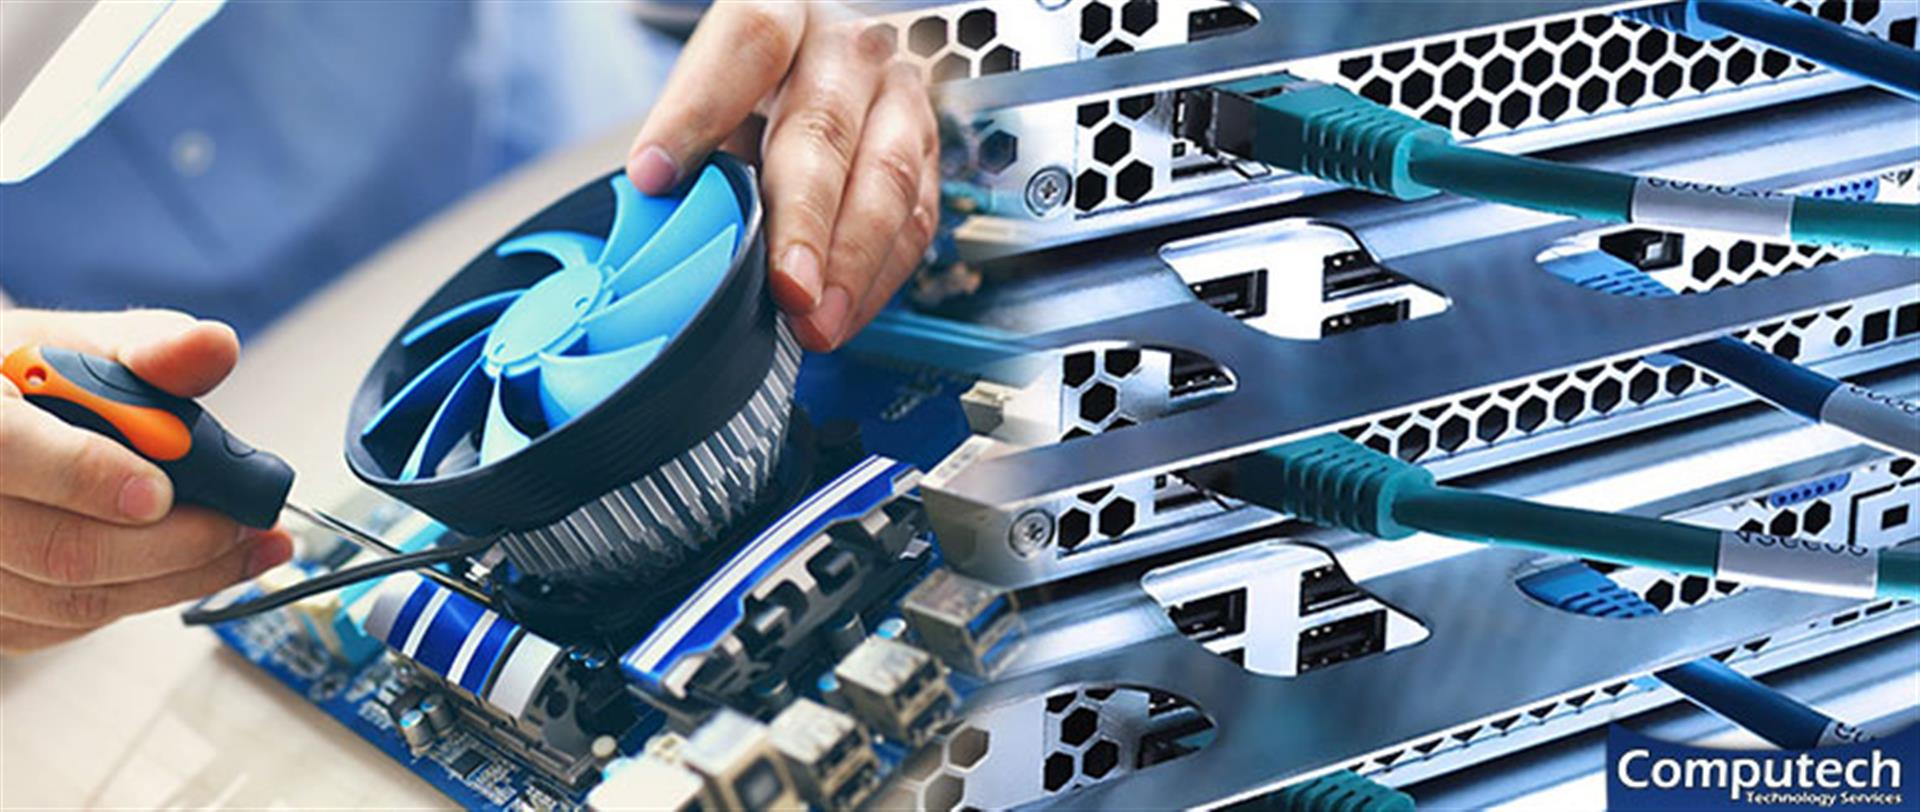 Powder Springs Georgia Onsite PC & Printer Repair, Network, Voice & Data Cabling Solutions